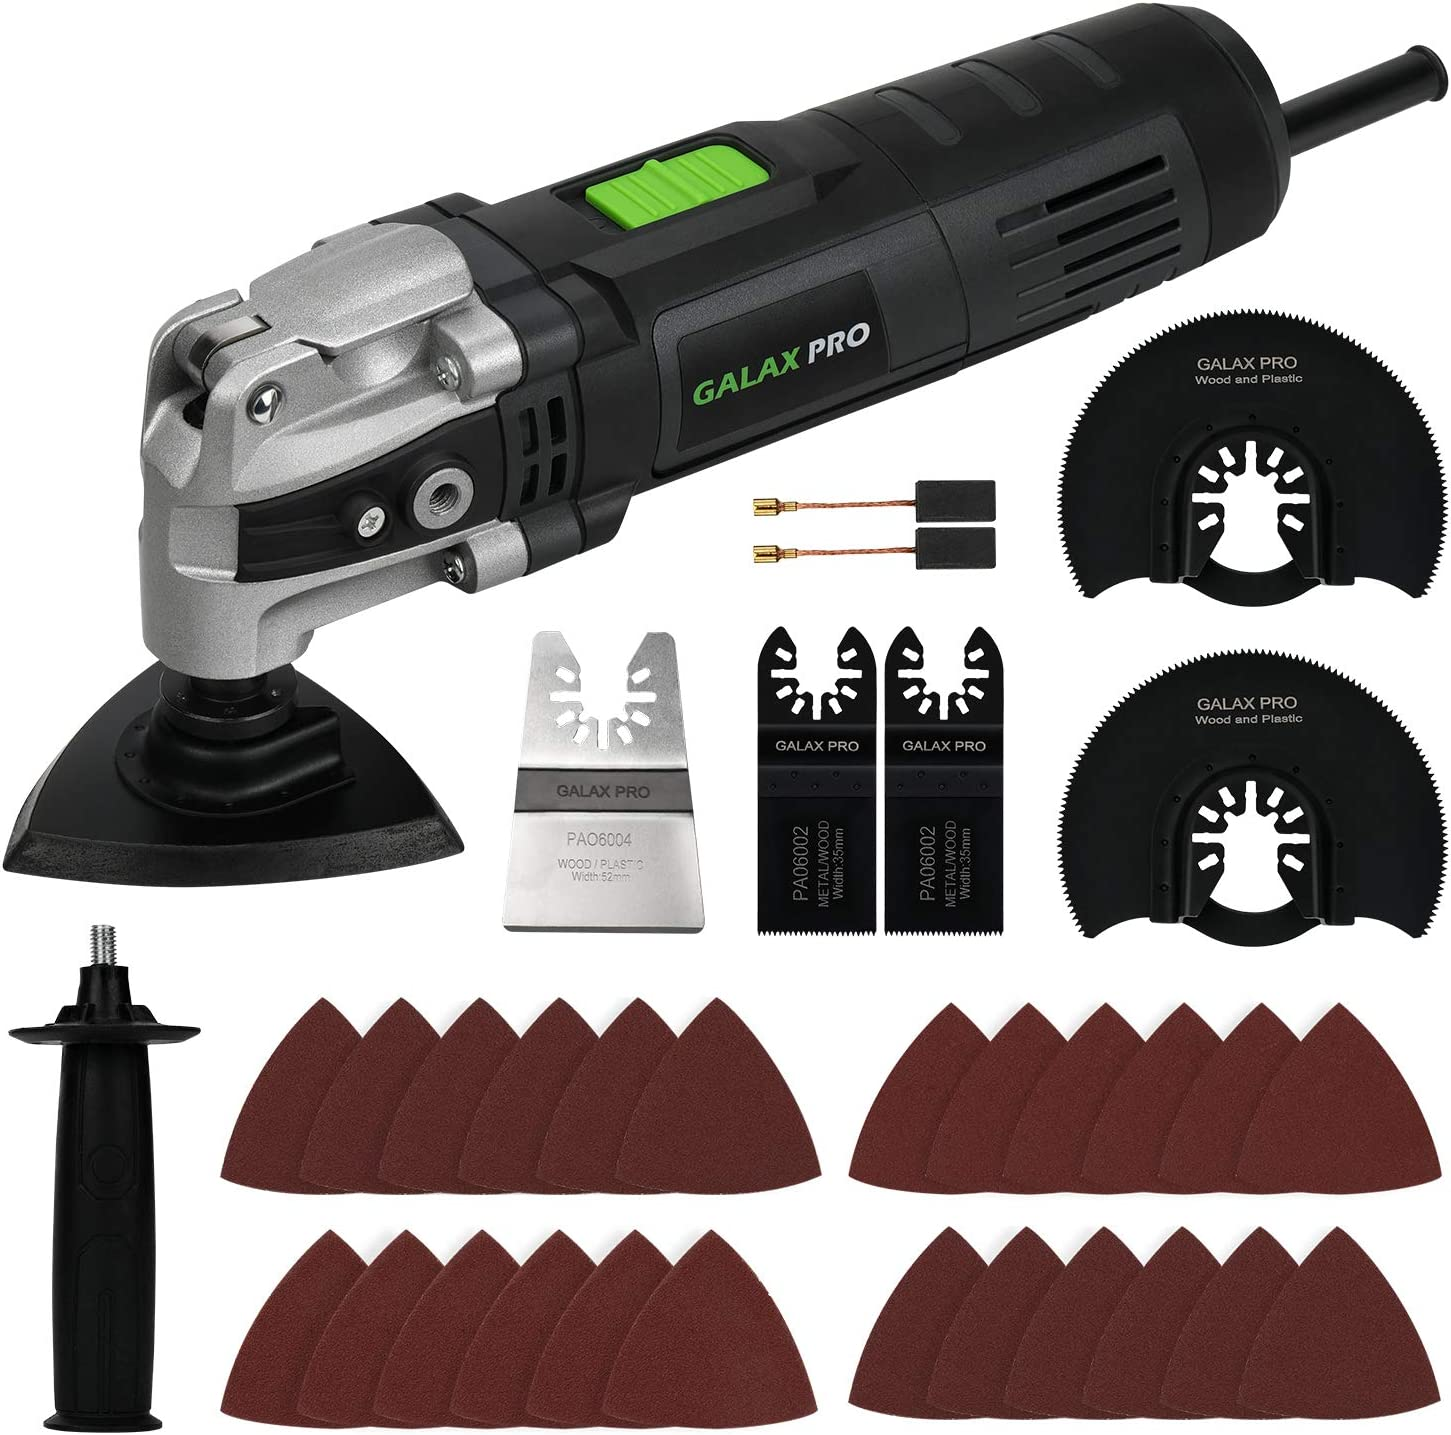 Oscillating Saw, GALAX PRO 3.5A 6 Variable Speed Oscillating Multi Function Power Tool Kit with Quick Clamp System Change and 30pcs Accessories, Oscillating Angle:4° for Cutting, Sanding, Grinding